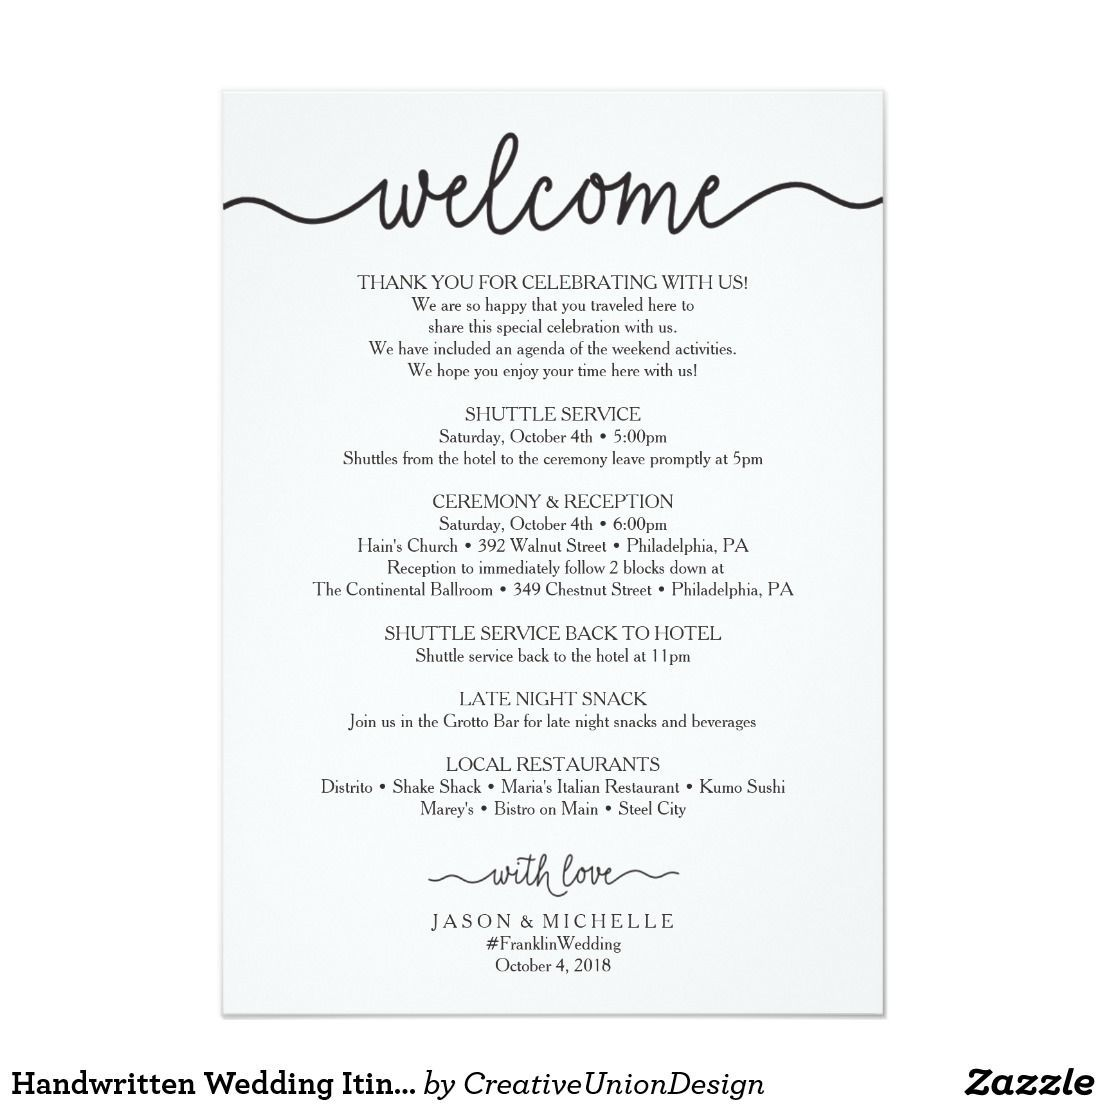 002 Outstanding Cruise Wedding Welcome Letter Template Photo Full